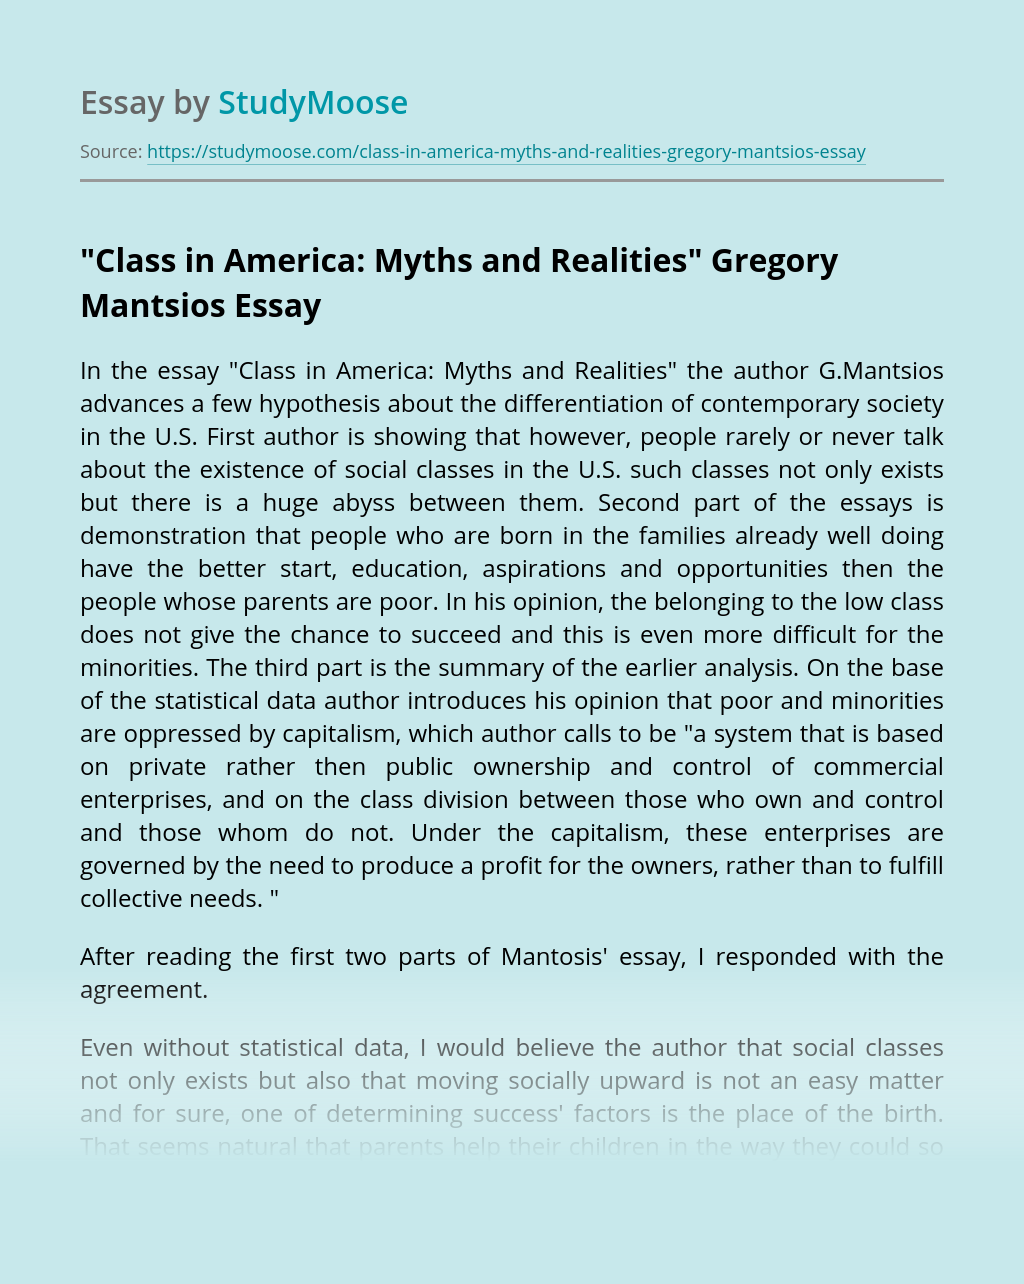 """""""Class in America: Myths and Realities"""" Gregory Mantsios"""